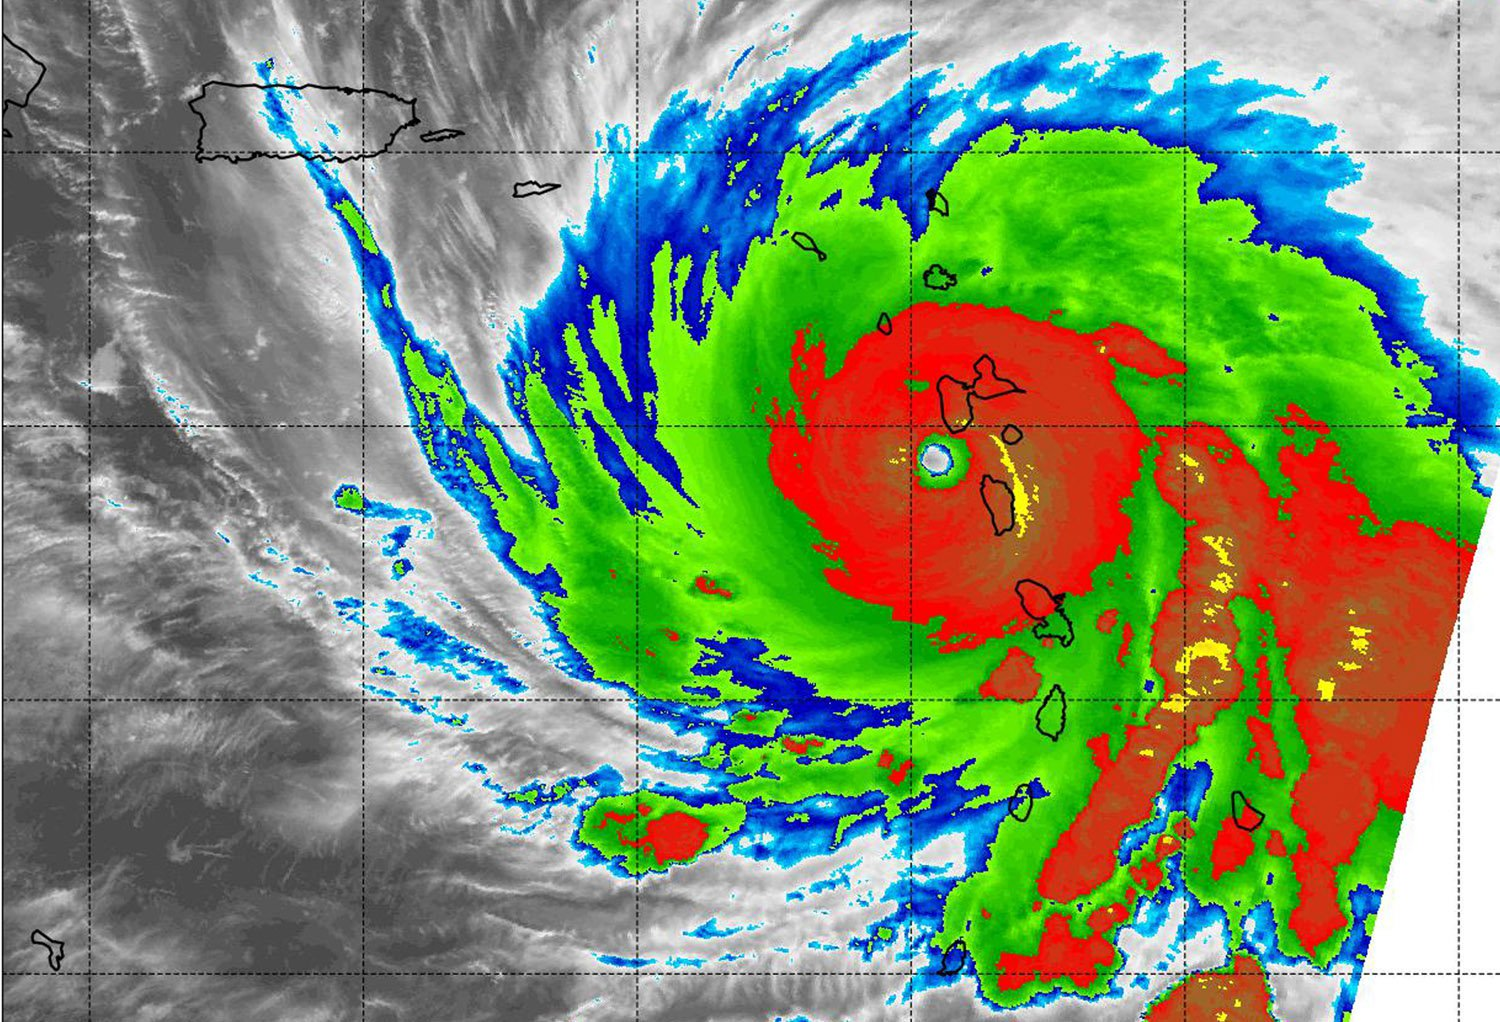 Where is Hurricane Maria now and when will it hit the US?